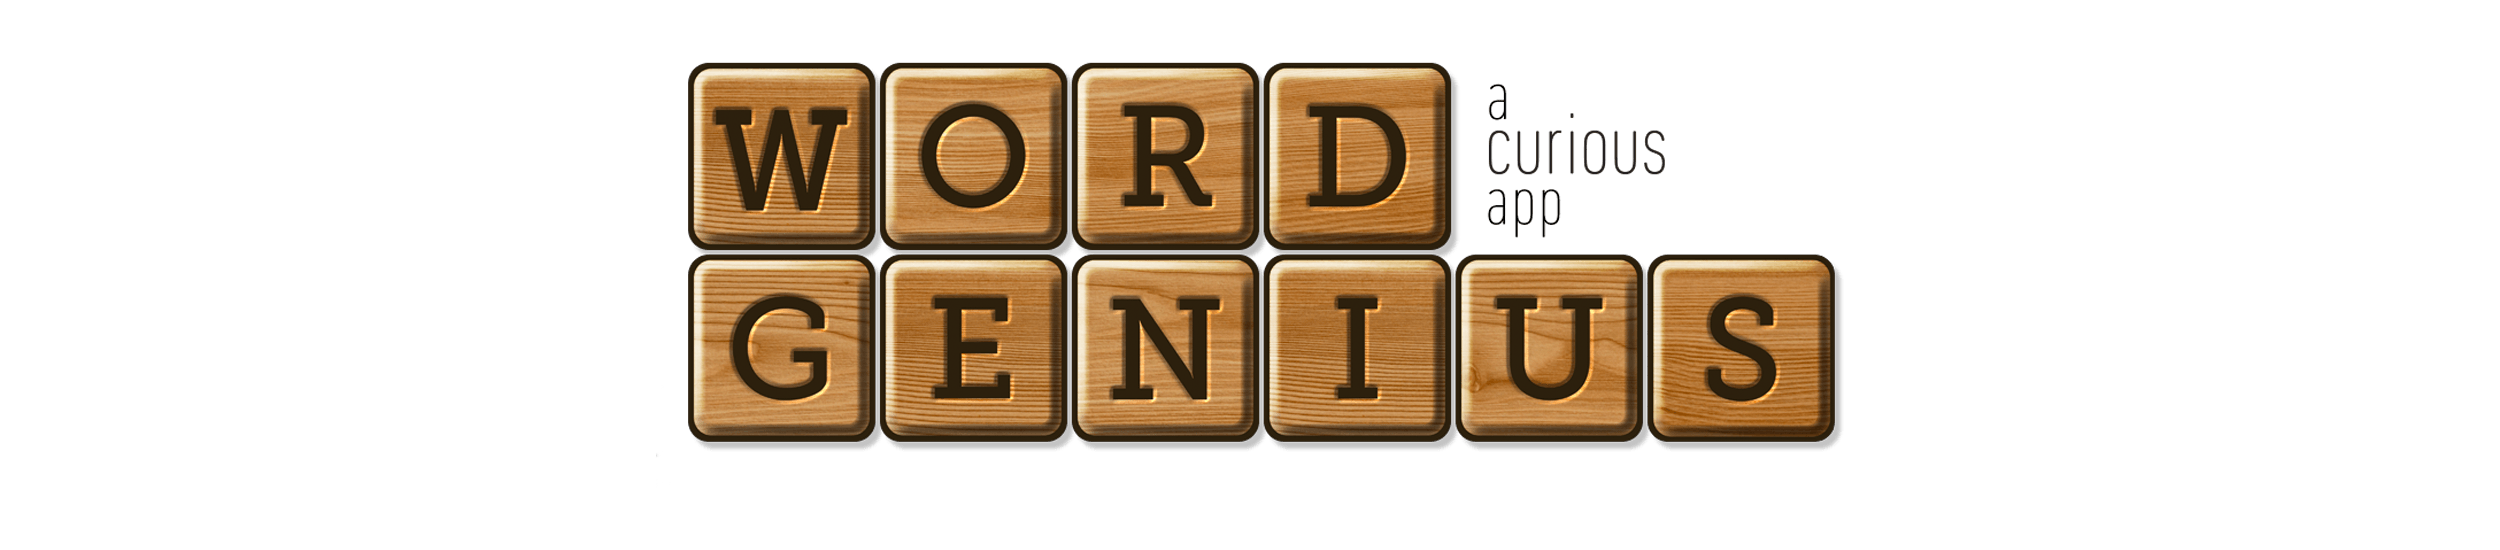 WORDGENIUSlogo.png